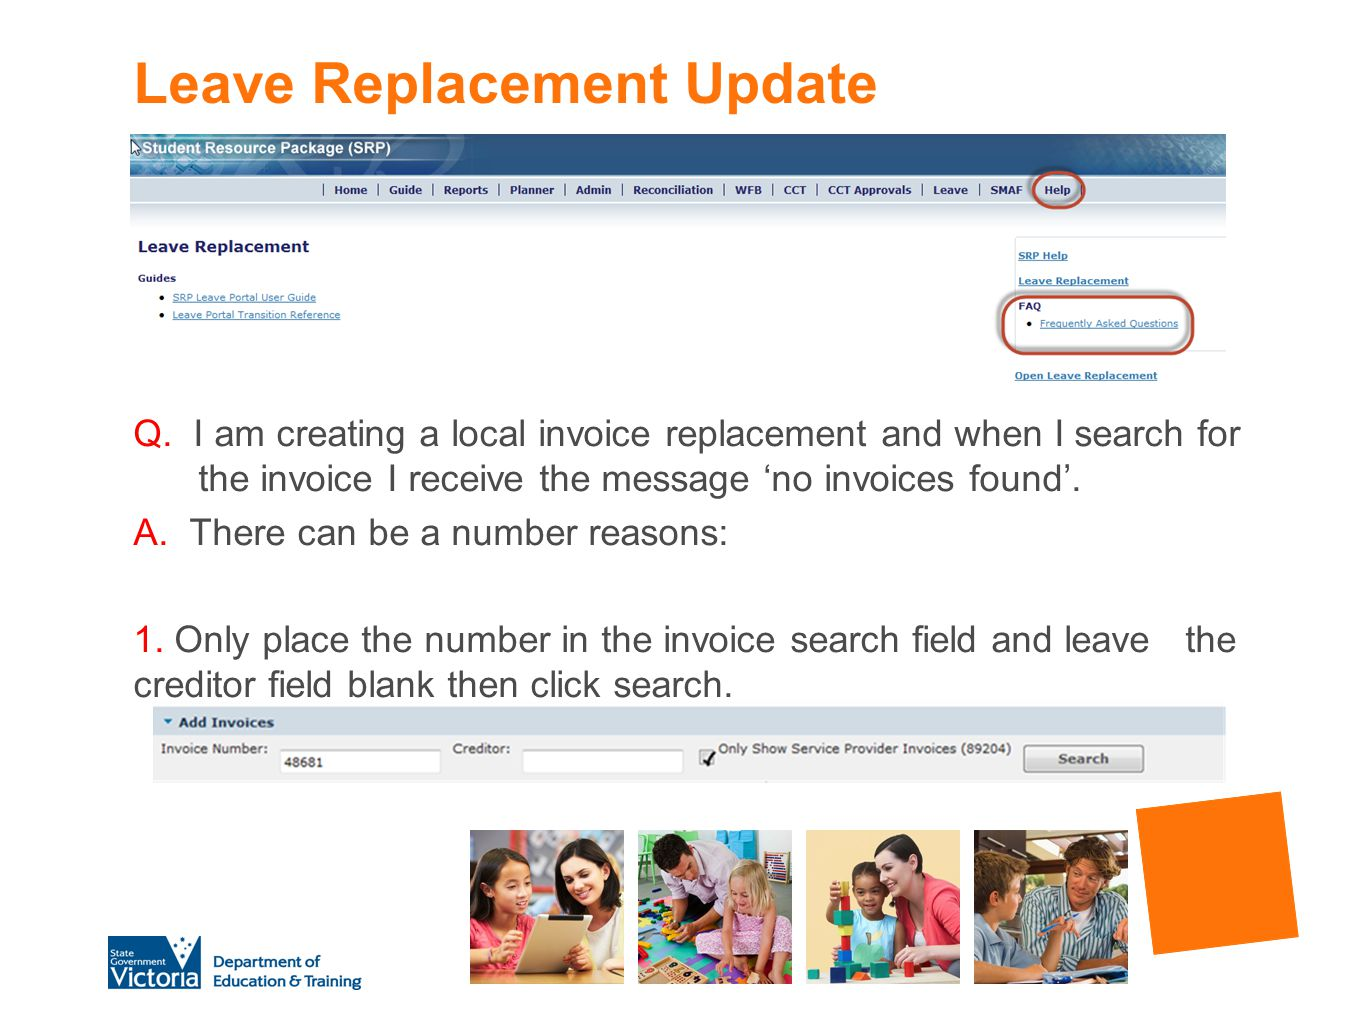 Leave Replacement Update Q. I am creating a local invoice replacement and when I search for the invoice I receive the message 'no invoices found'. A.